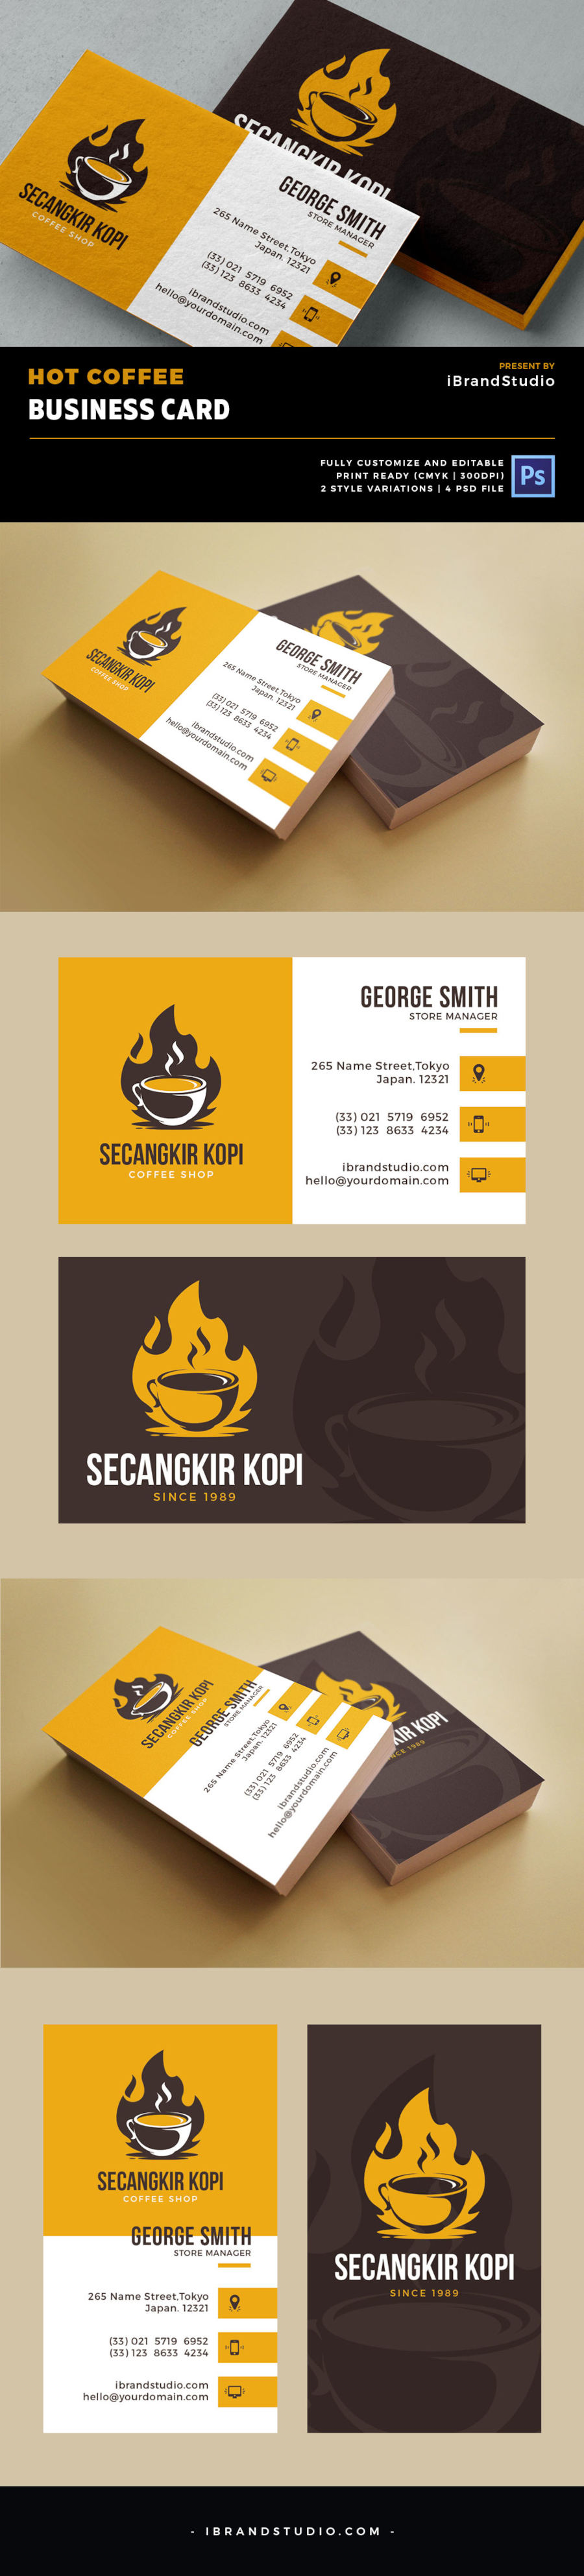 Free Hot Coffee Business Card Template